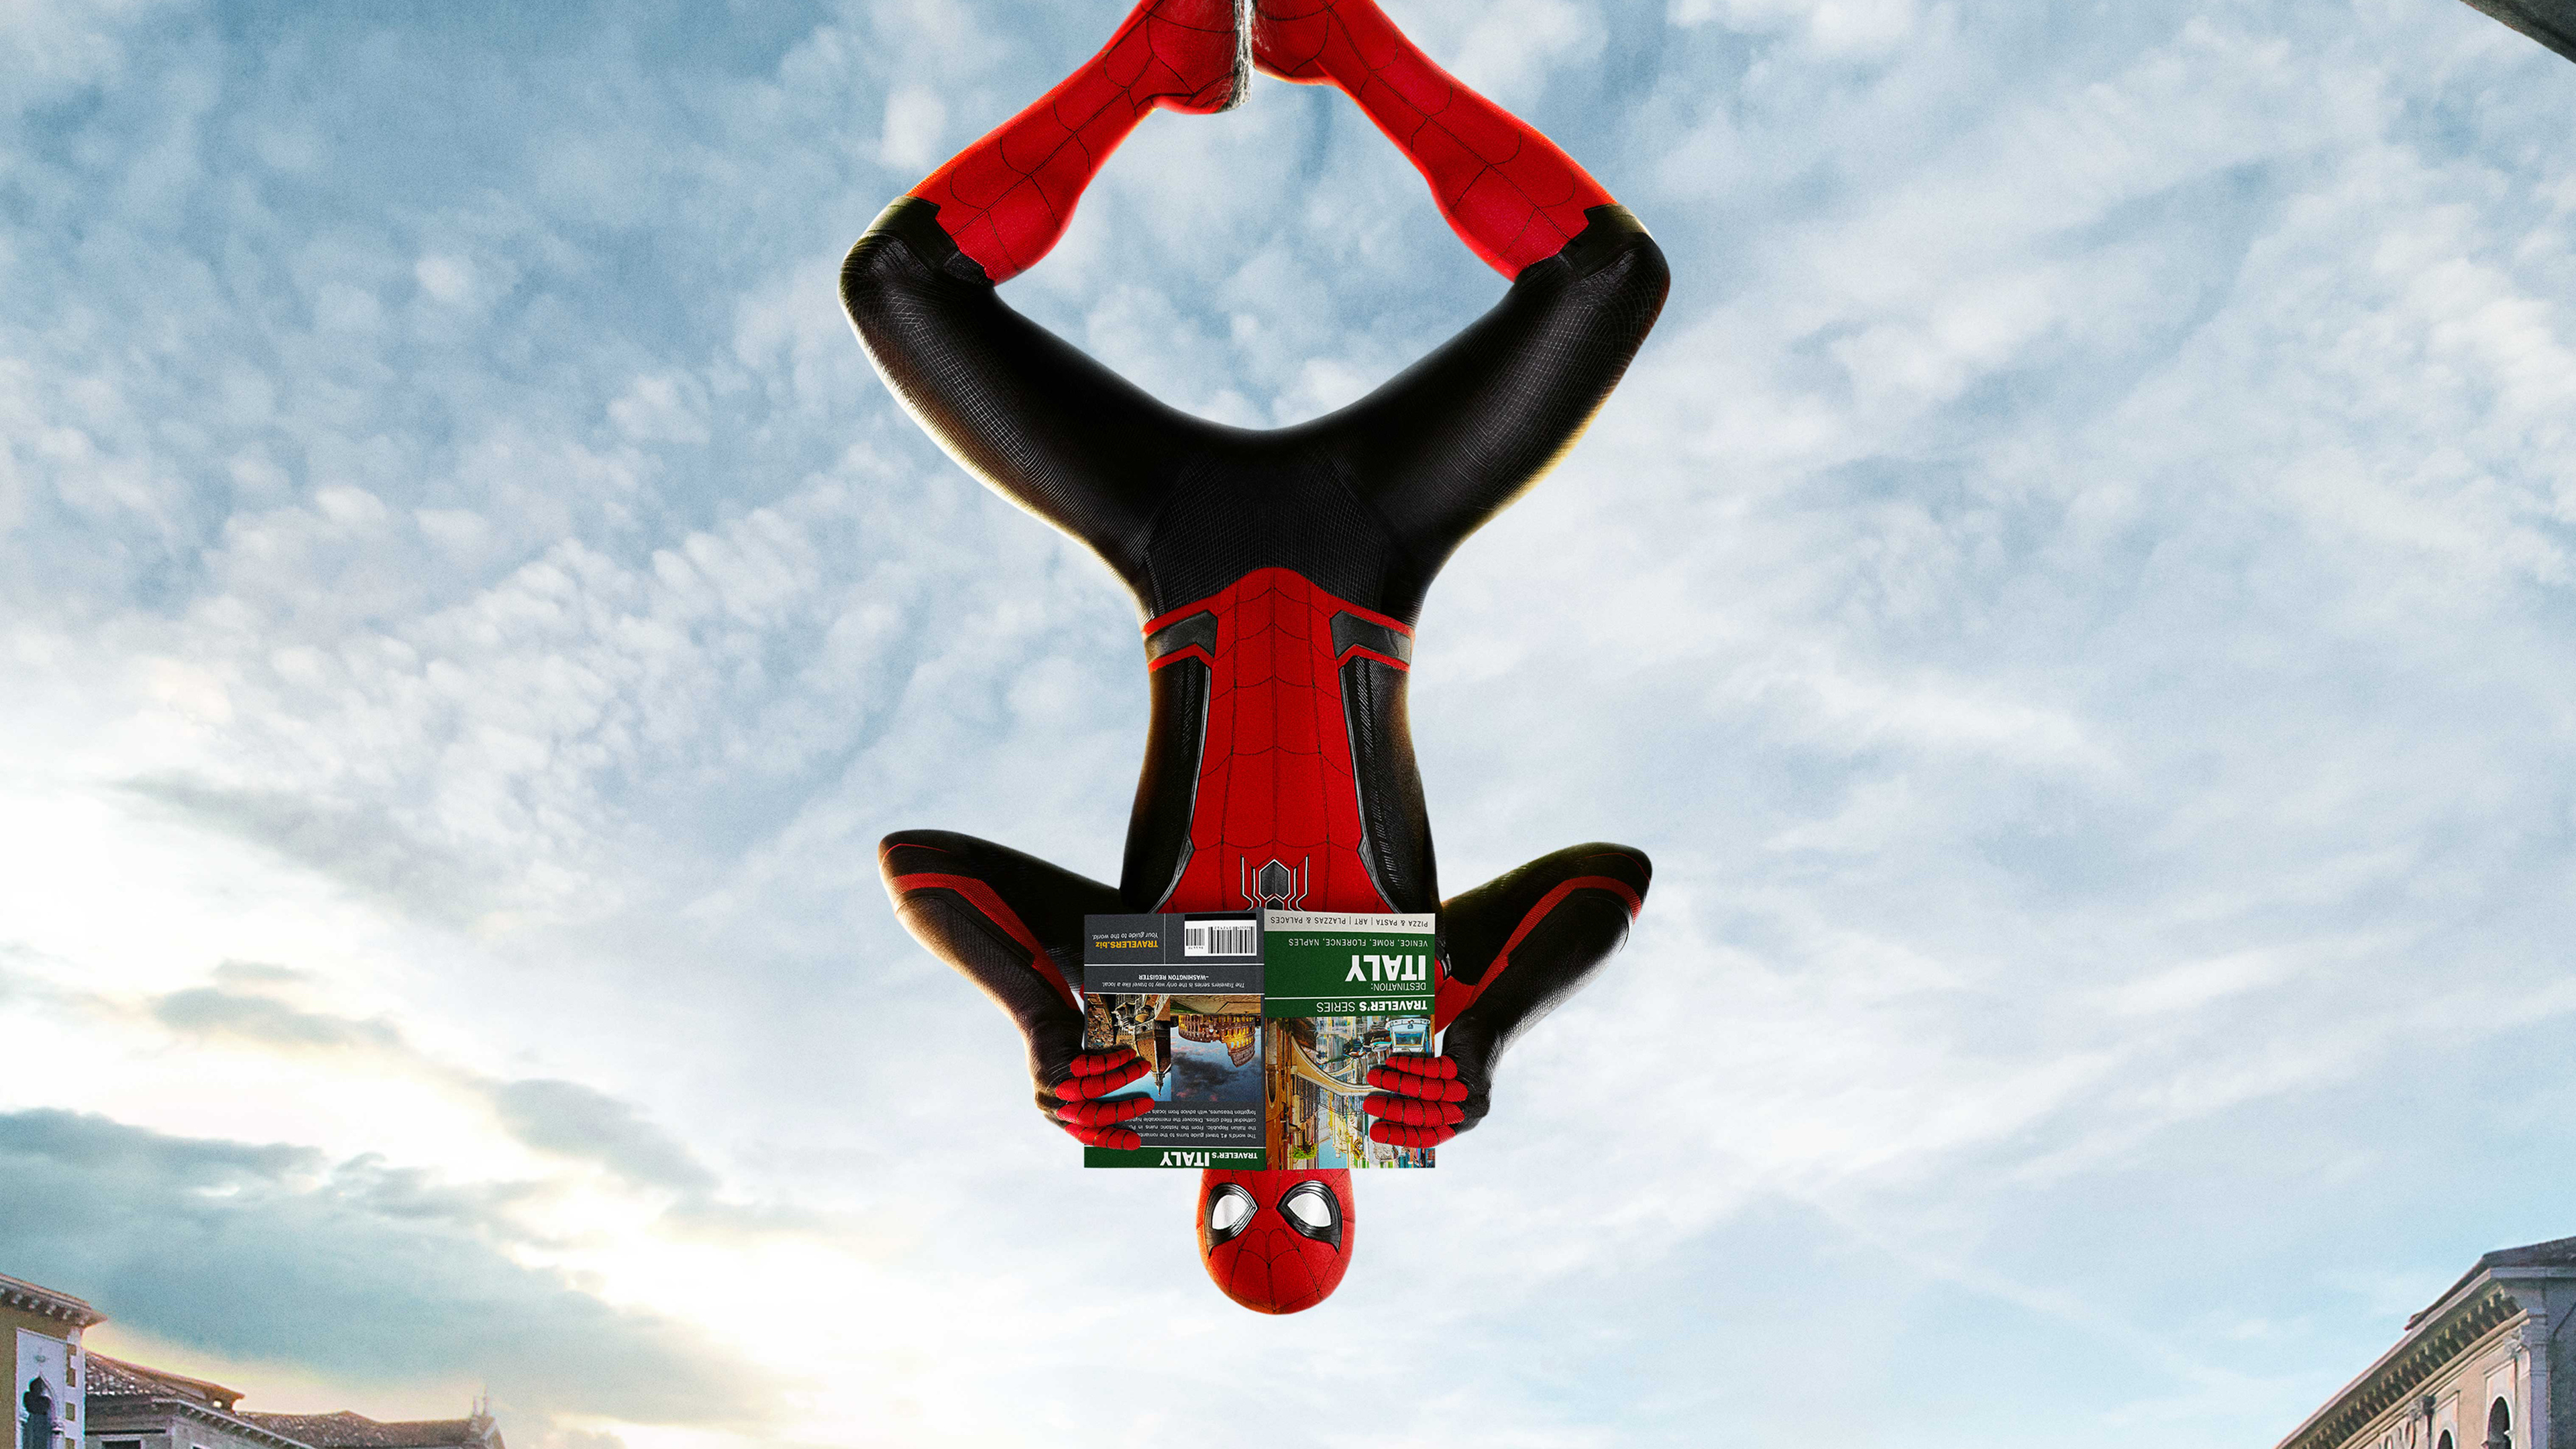 2019 spider man far from home 4k 1555208689 - 2019 Spider Man Far From Home 4k - tom holland wallpapers, superheroes wallpapers, spiderman wallpapers, spiderman far from home wallpapers, movies wallpapers, hd-wallpapers, 5k wallpapers, 4k-wallpapers, 2019 movies wallpapers